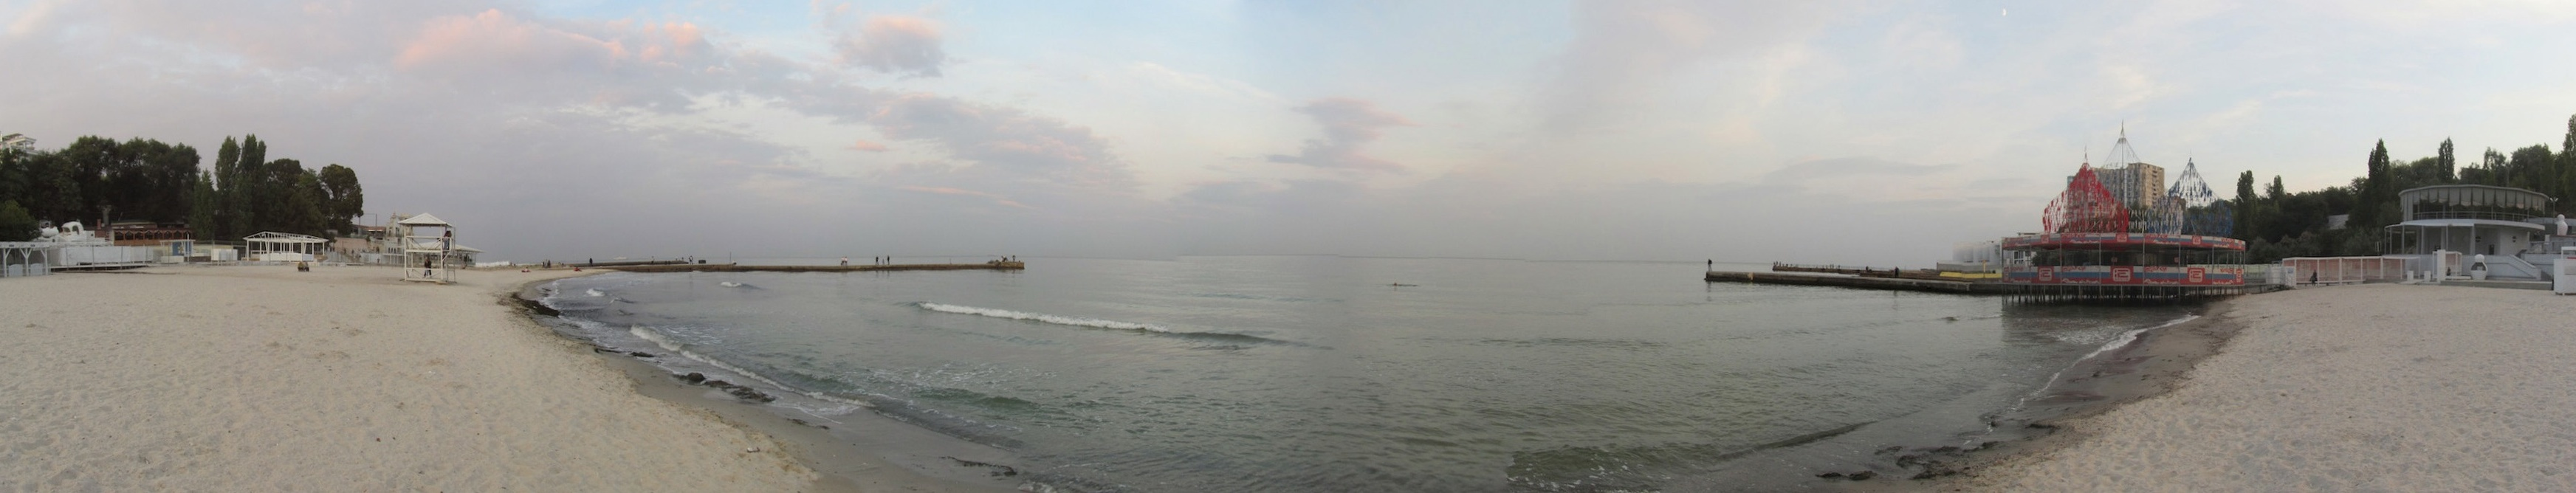 pano: Arkadia beach on the Black Sea